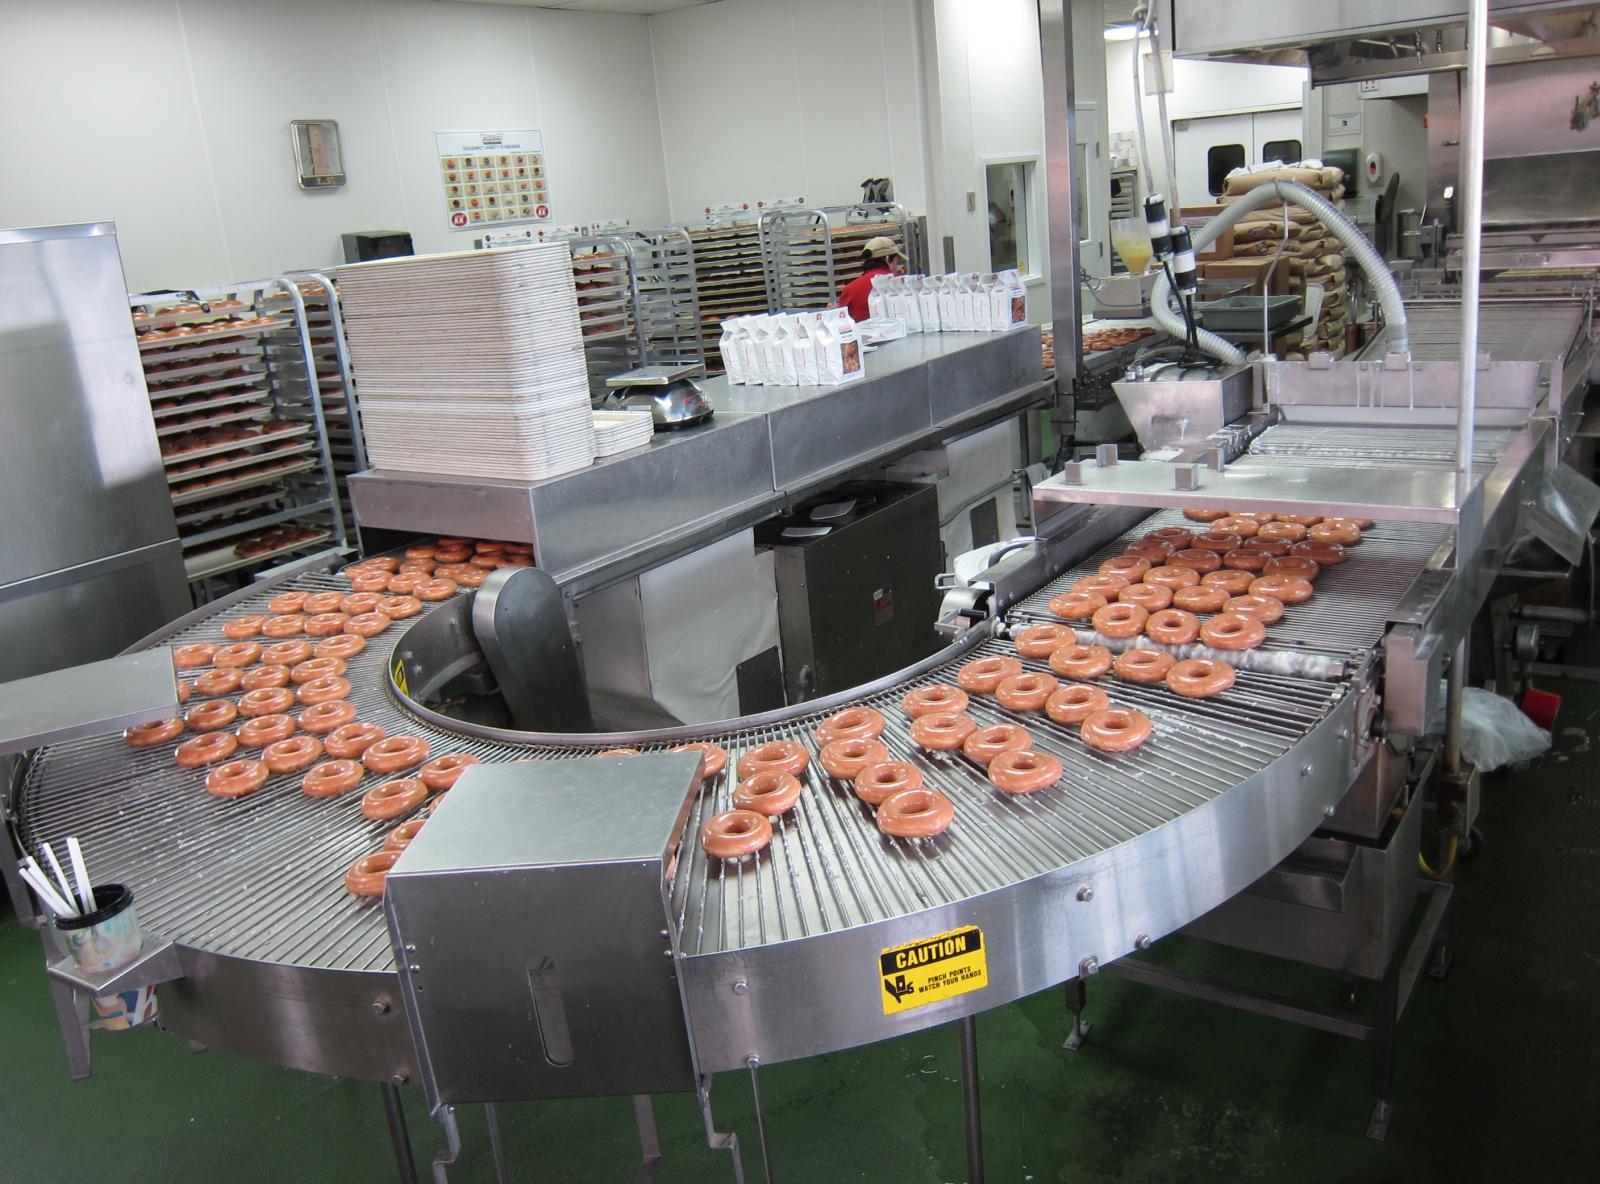 A machine for mass producing donuts.